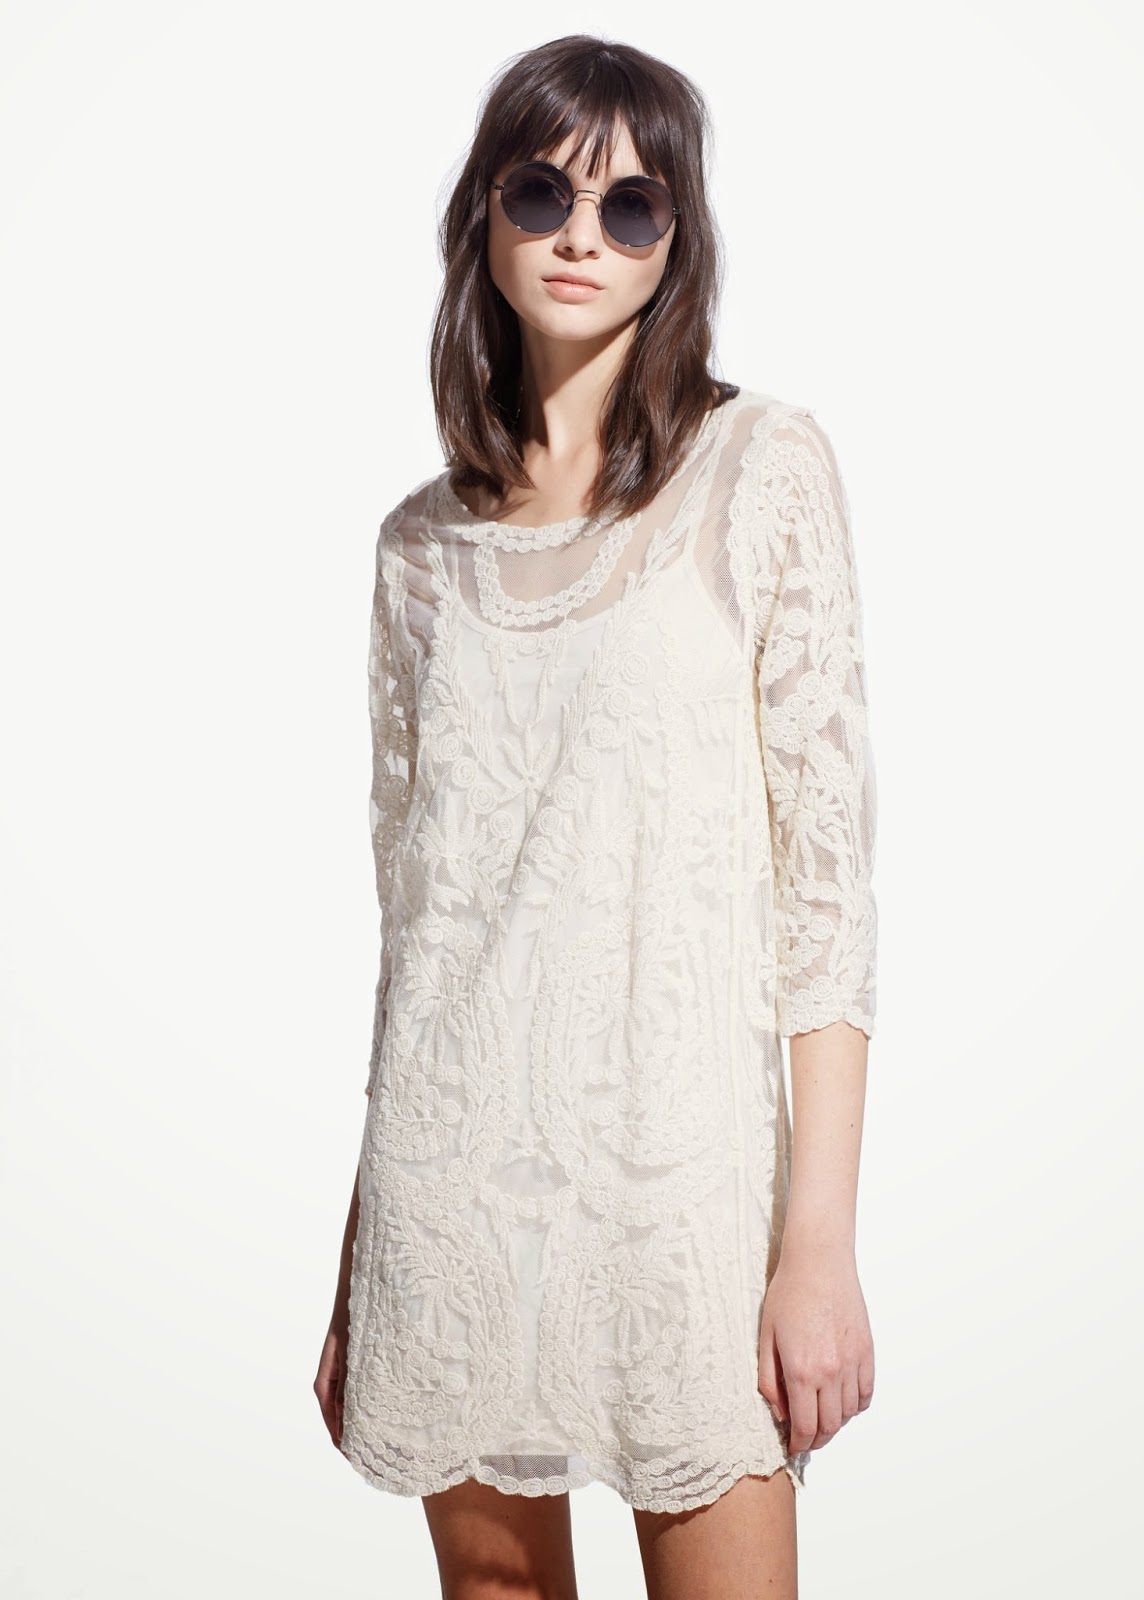 white boho dress 2015, mango white dress,